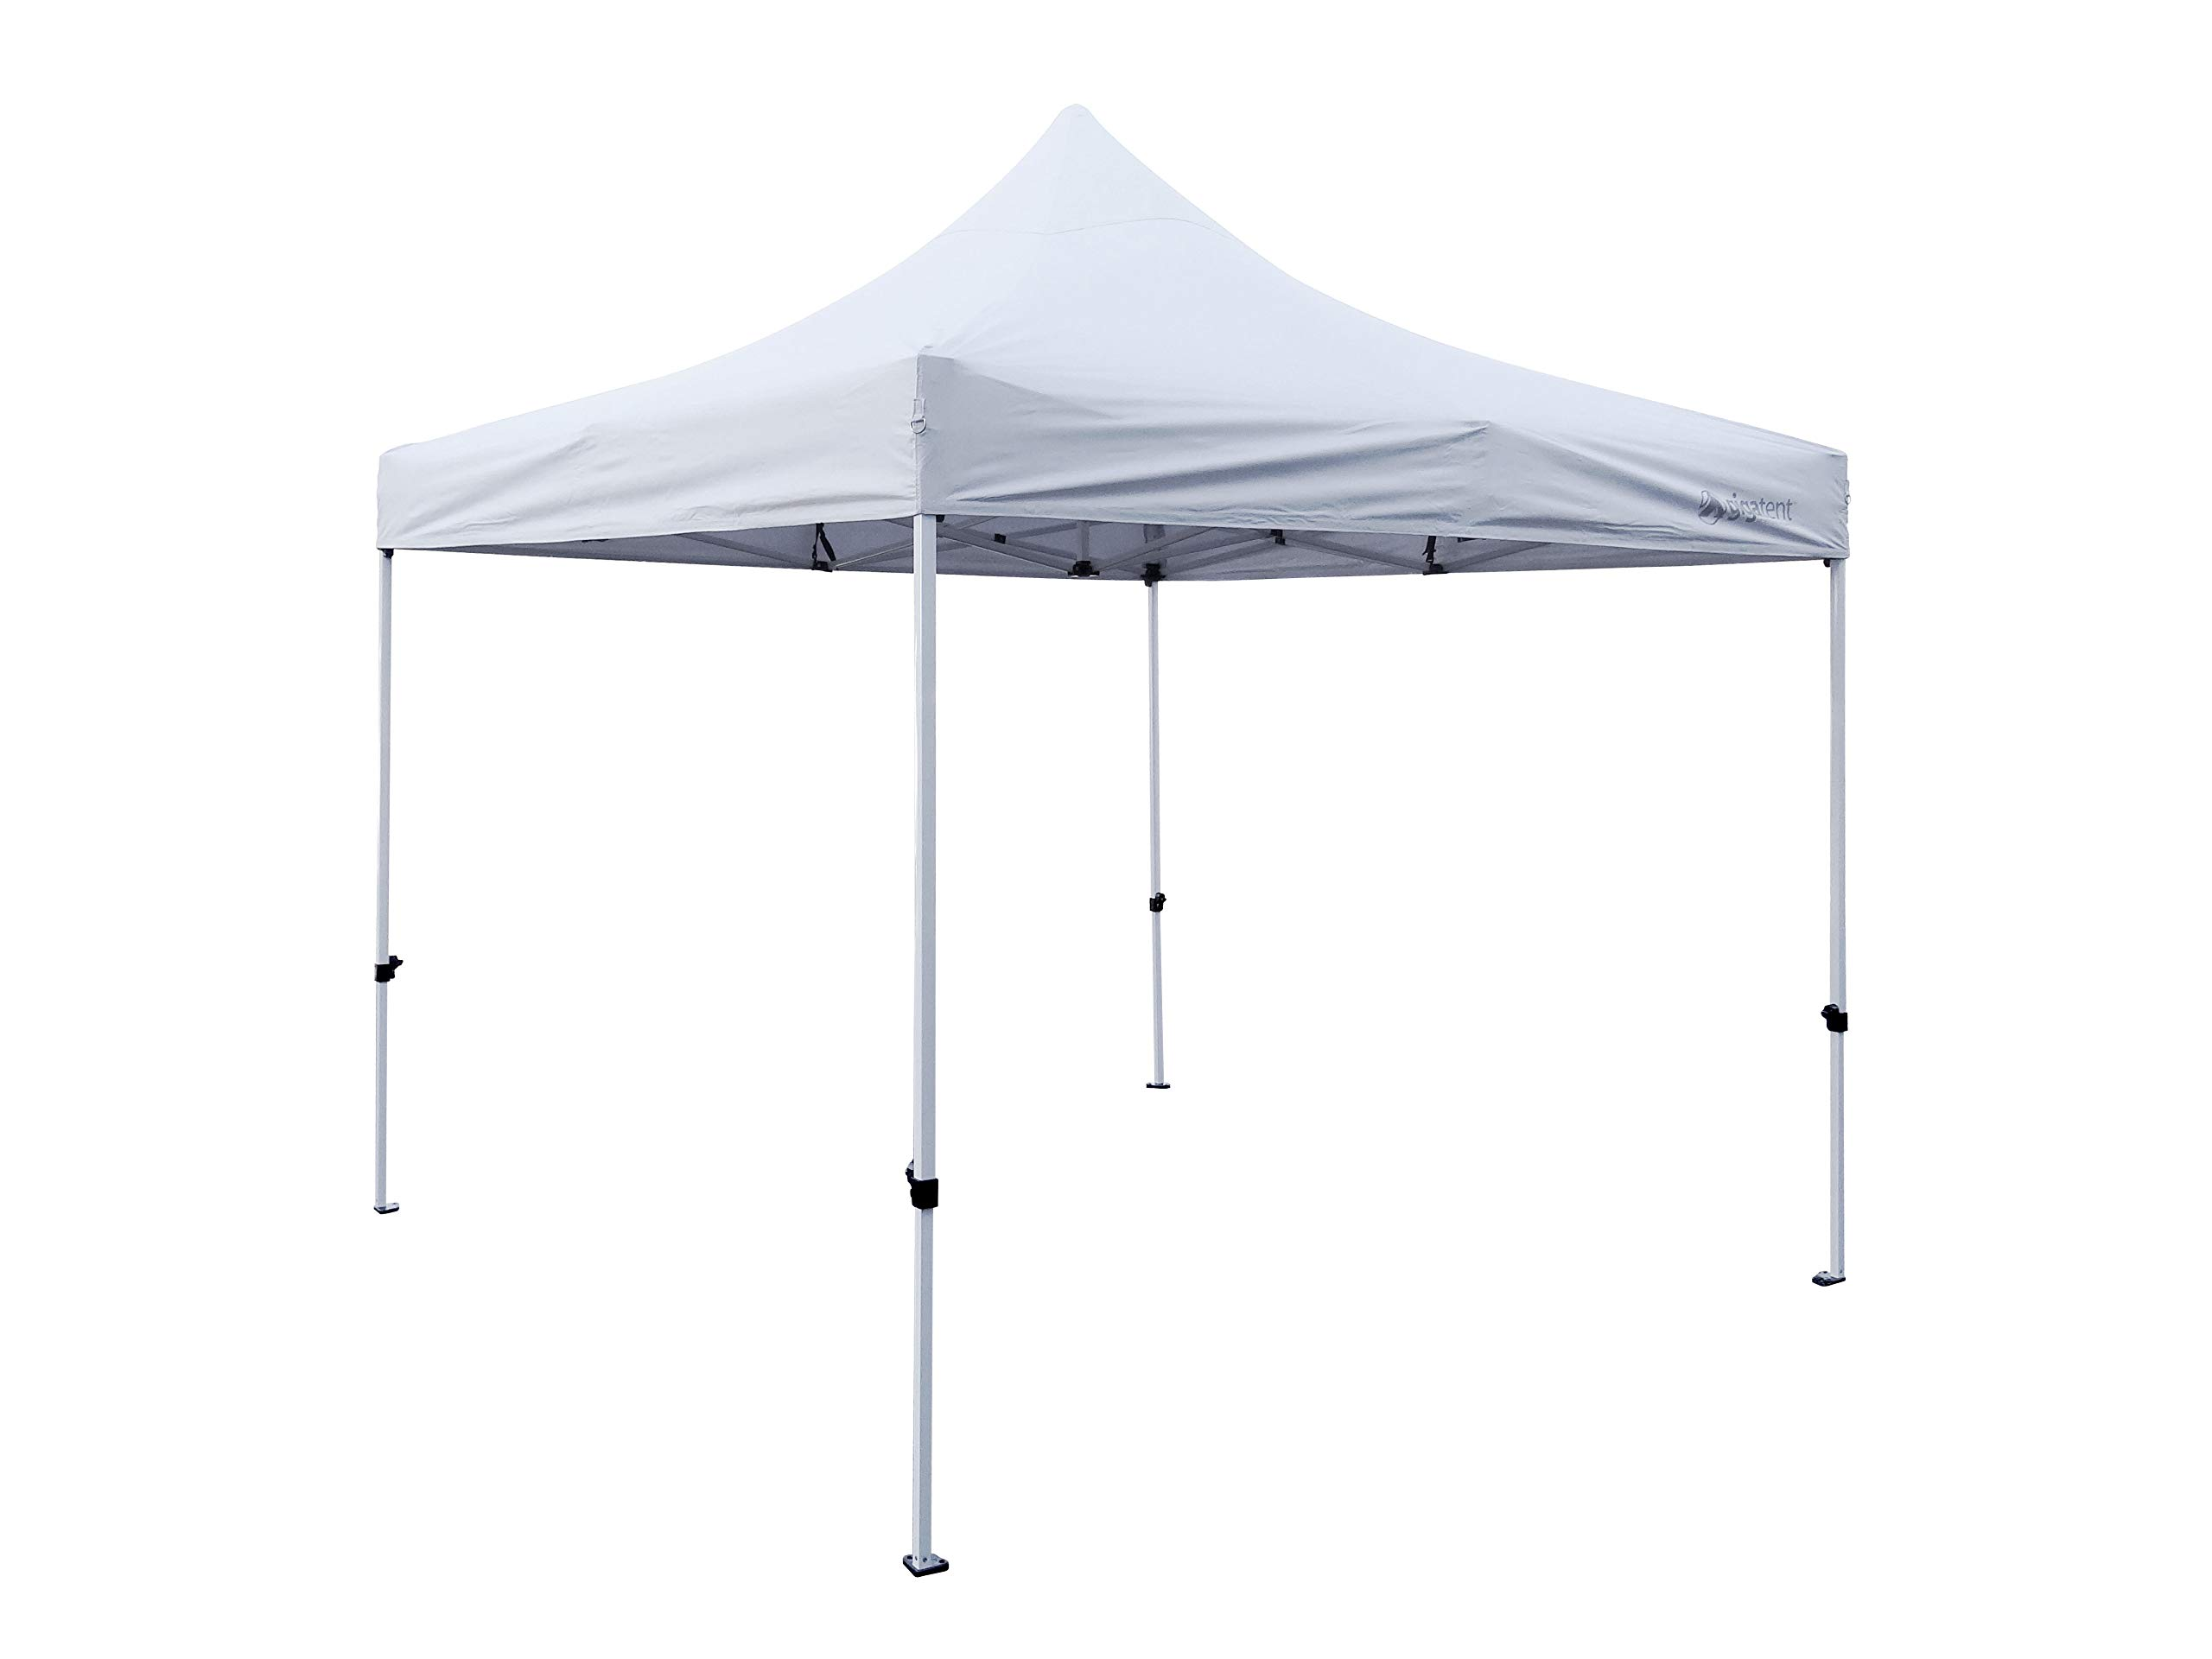 """GigaTent White Pop Up Canopy 10' x 10' - Rain and Waterproof, Fire Retardant, Adjustable Height Up to 130"""" - Powder Coated Steel Frame - Outdoor Party Tent, Sun Shade and Booth Cover – Easy Set Up"""